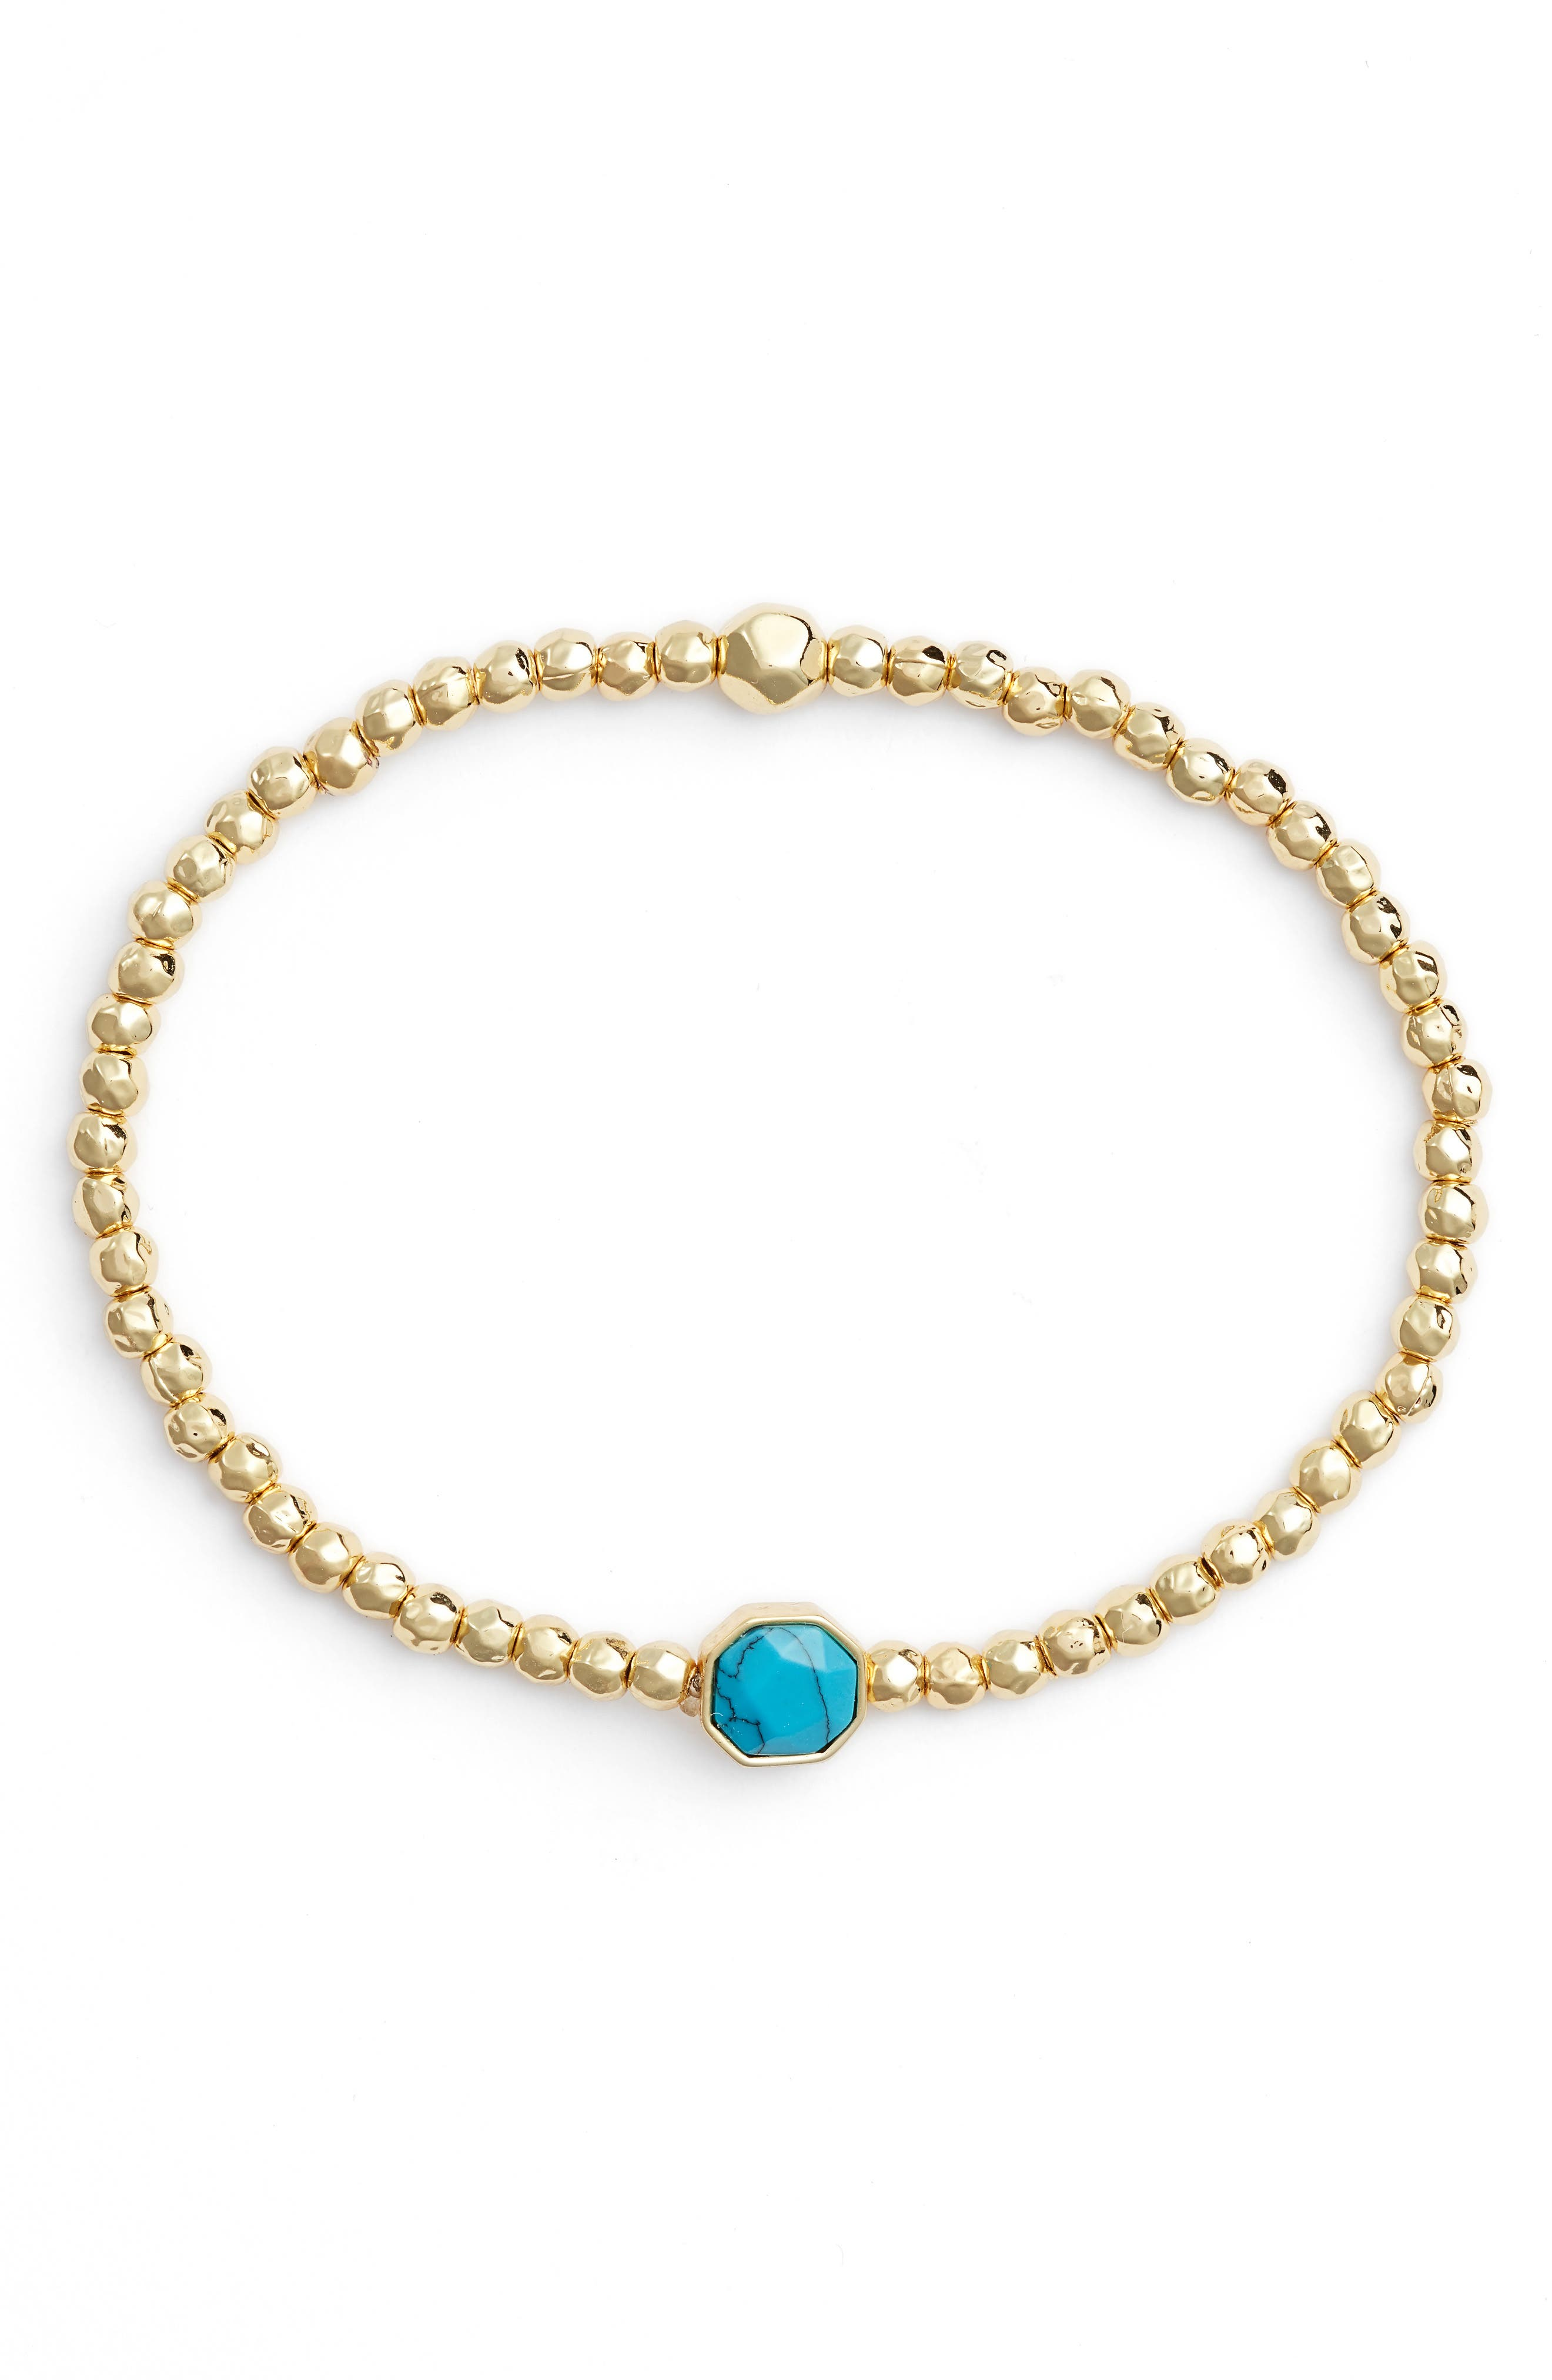 GORJANA Power Gemstone Beaded Bracelet, Main, color, TURQUOISE/ GOLD